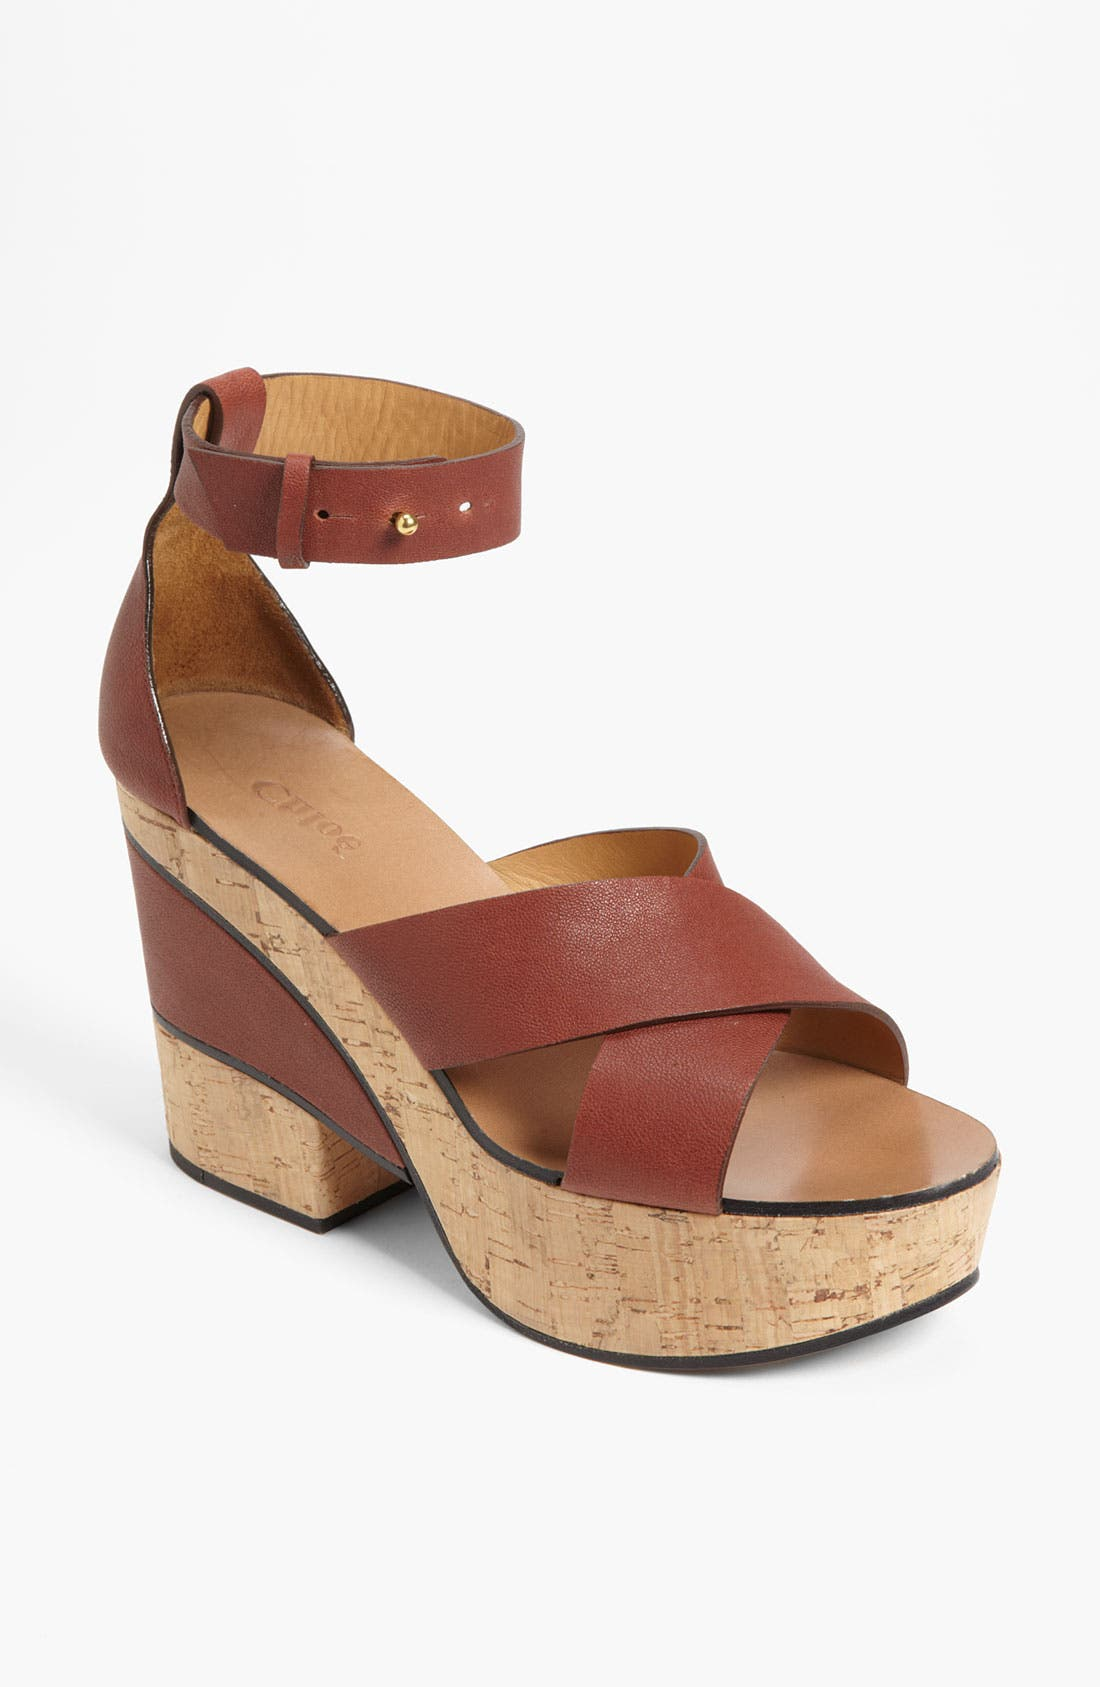 Alternate Image 1 Selected - Chloé Cork Sandal